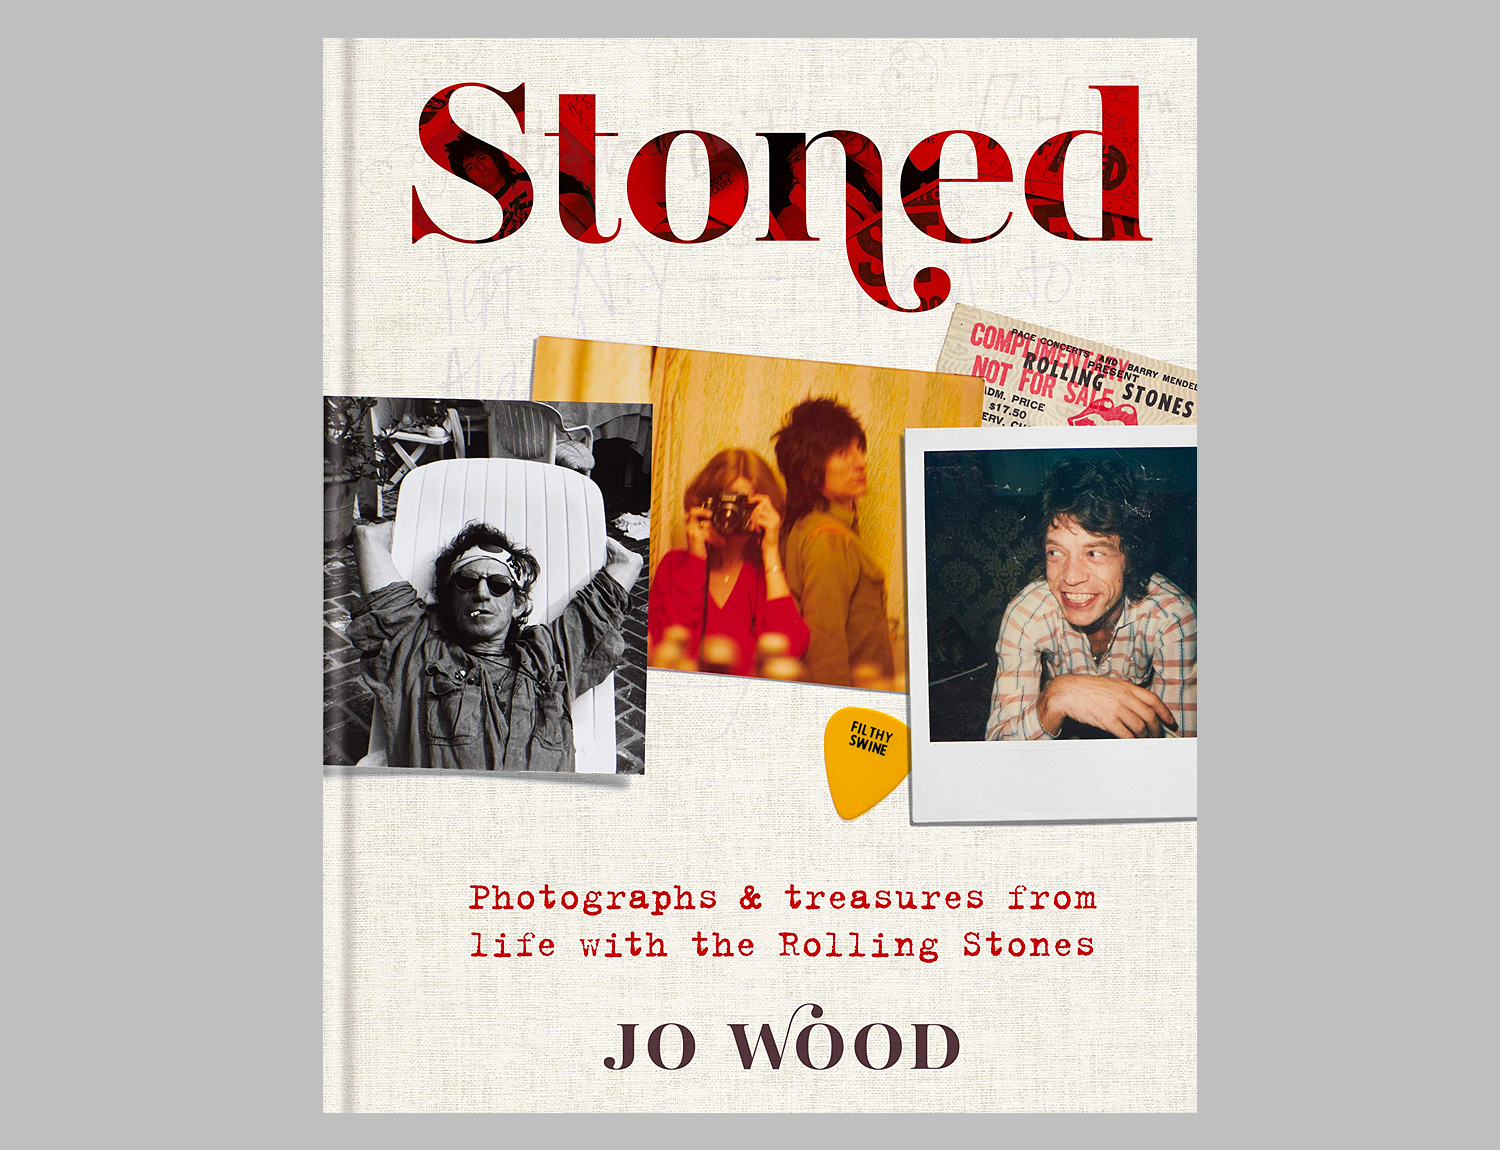 Stoned: Photographs & treasures from life with the Rolling Stones at werd.com